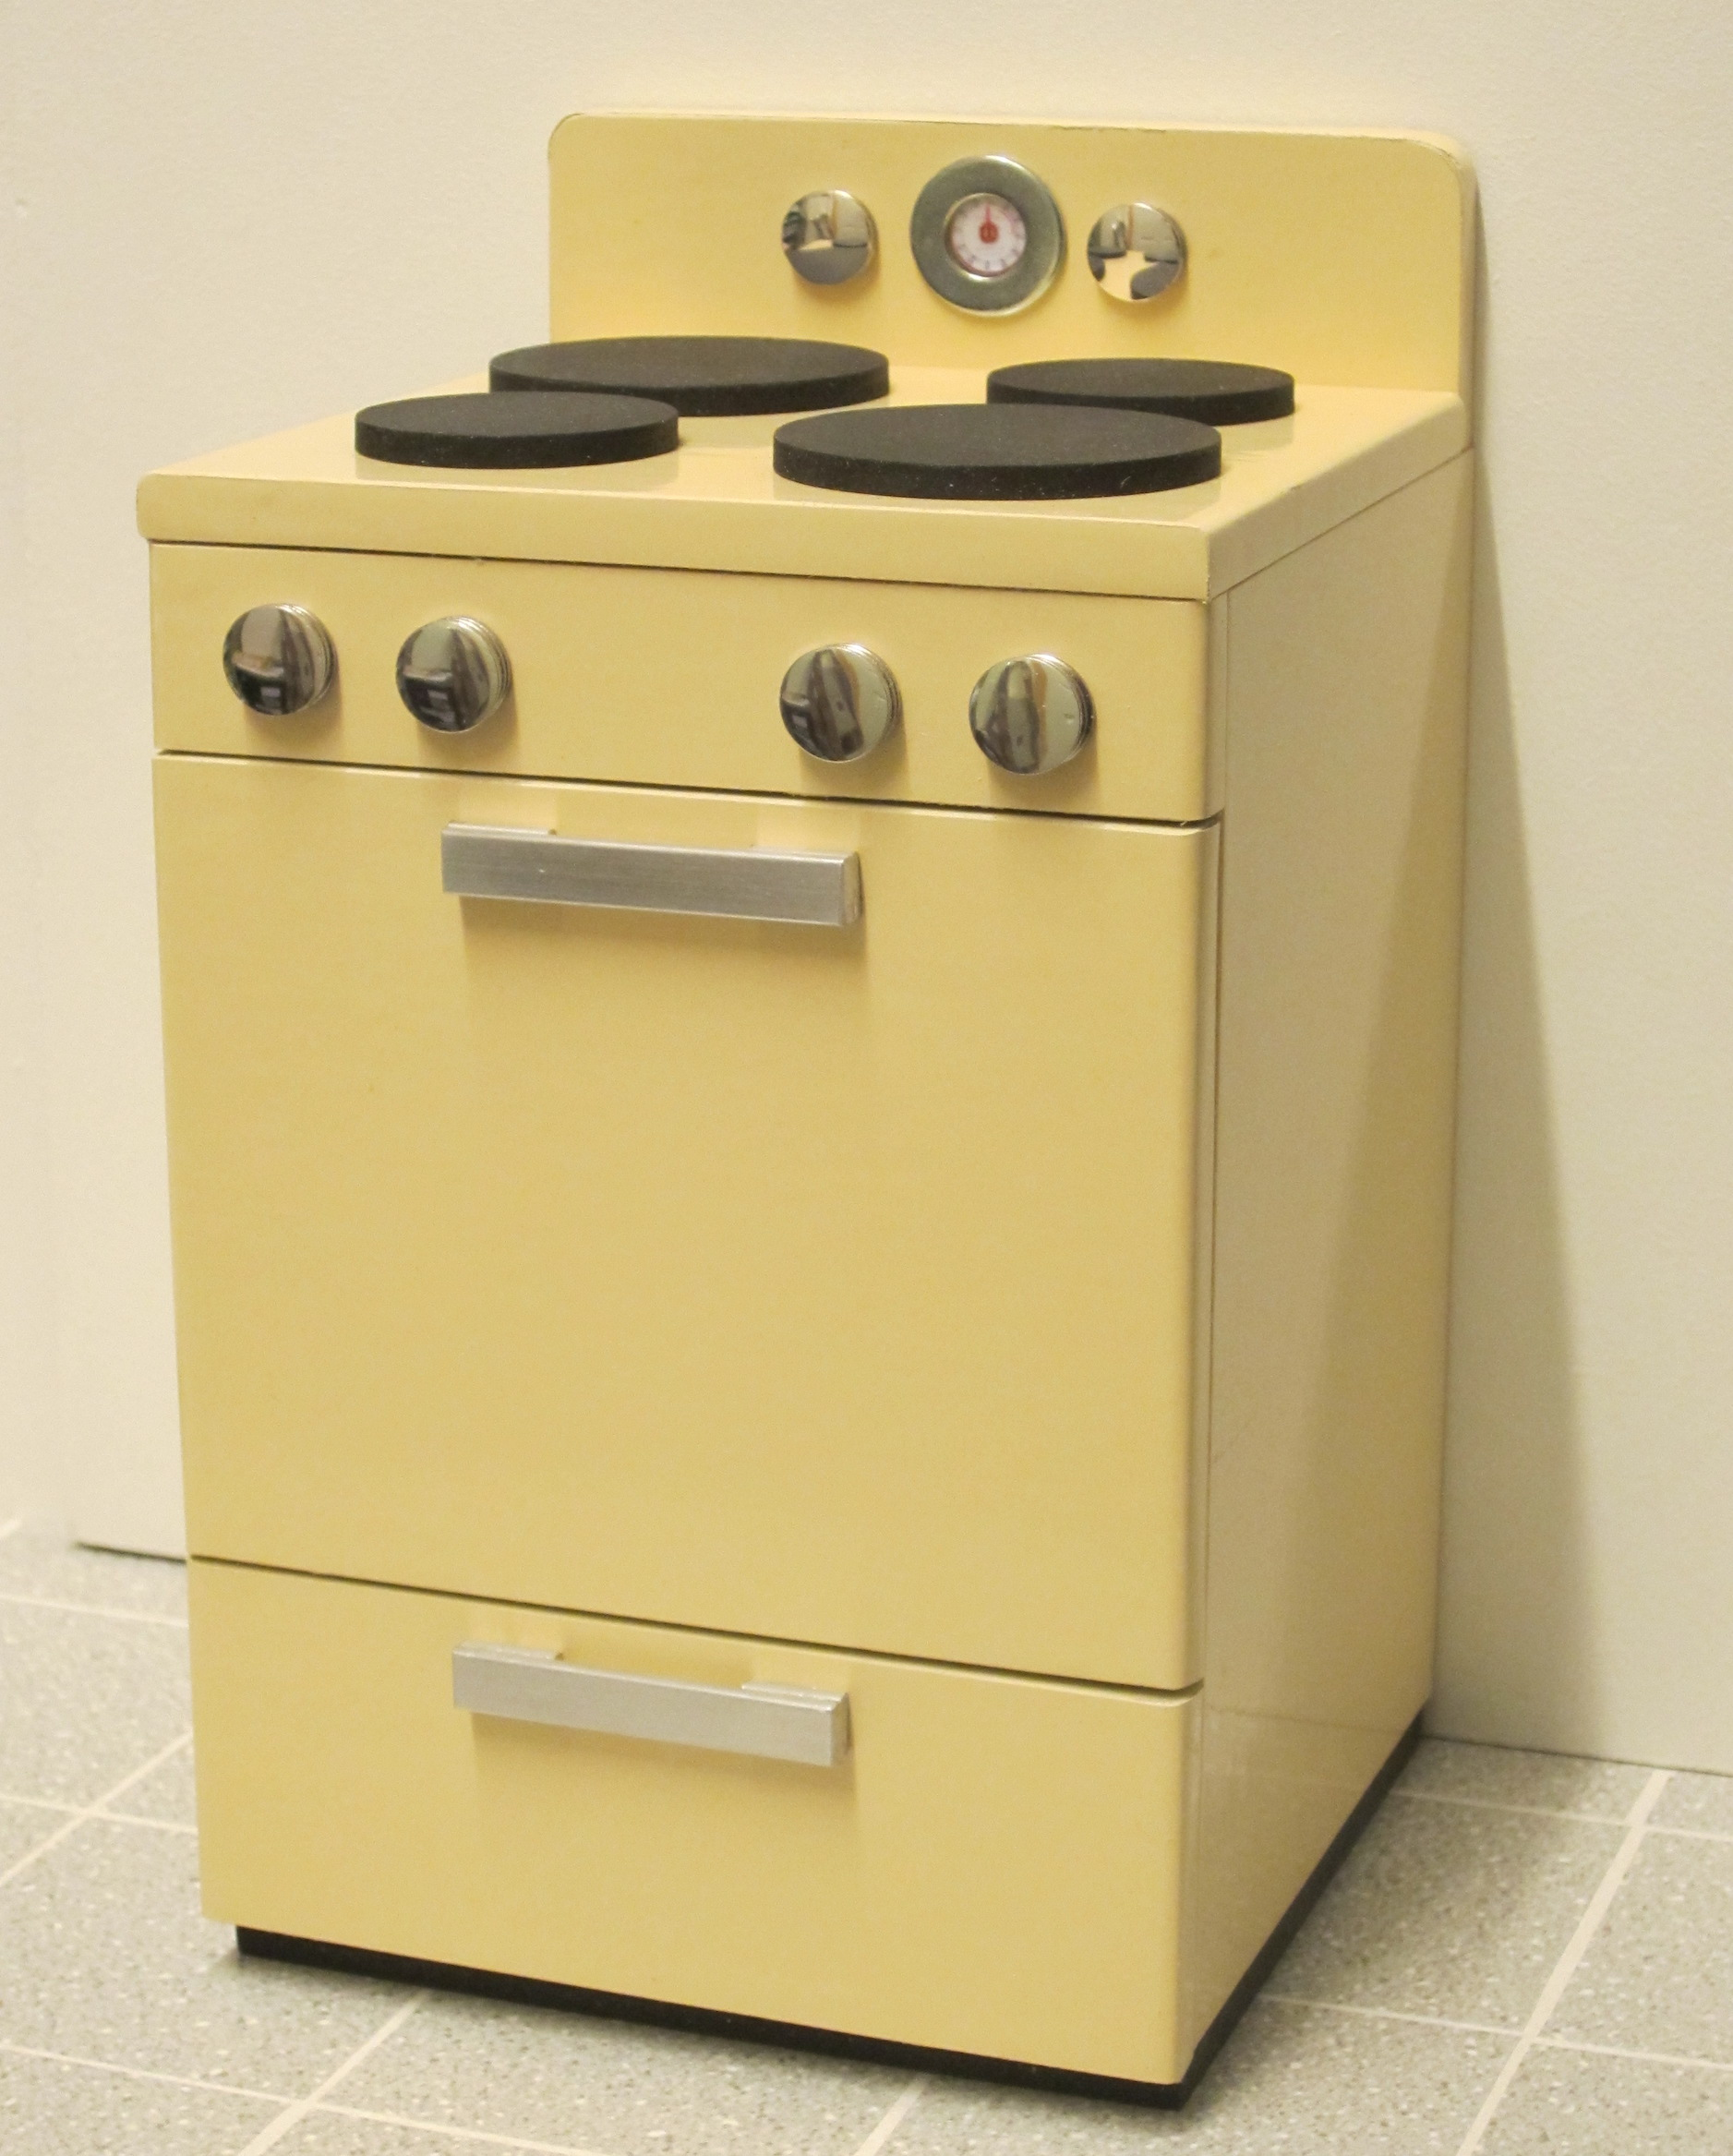 appliances protagonist italian miele chef cooking the school of yellow kitchen